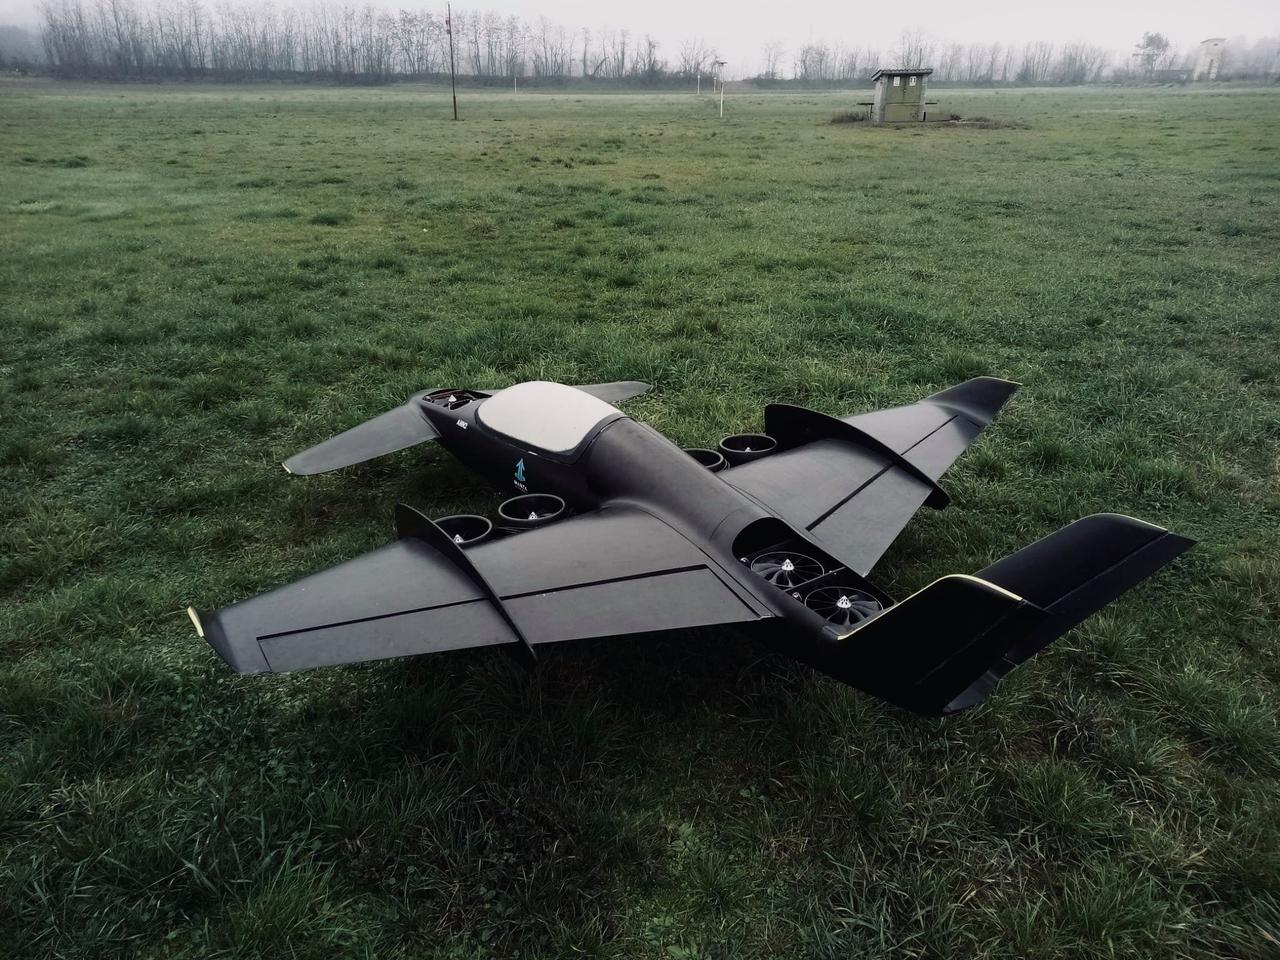 Manta's one-third scale prototype hybrid VTOL/STOL aircraft is nearly ready for flight tests